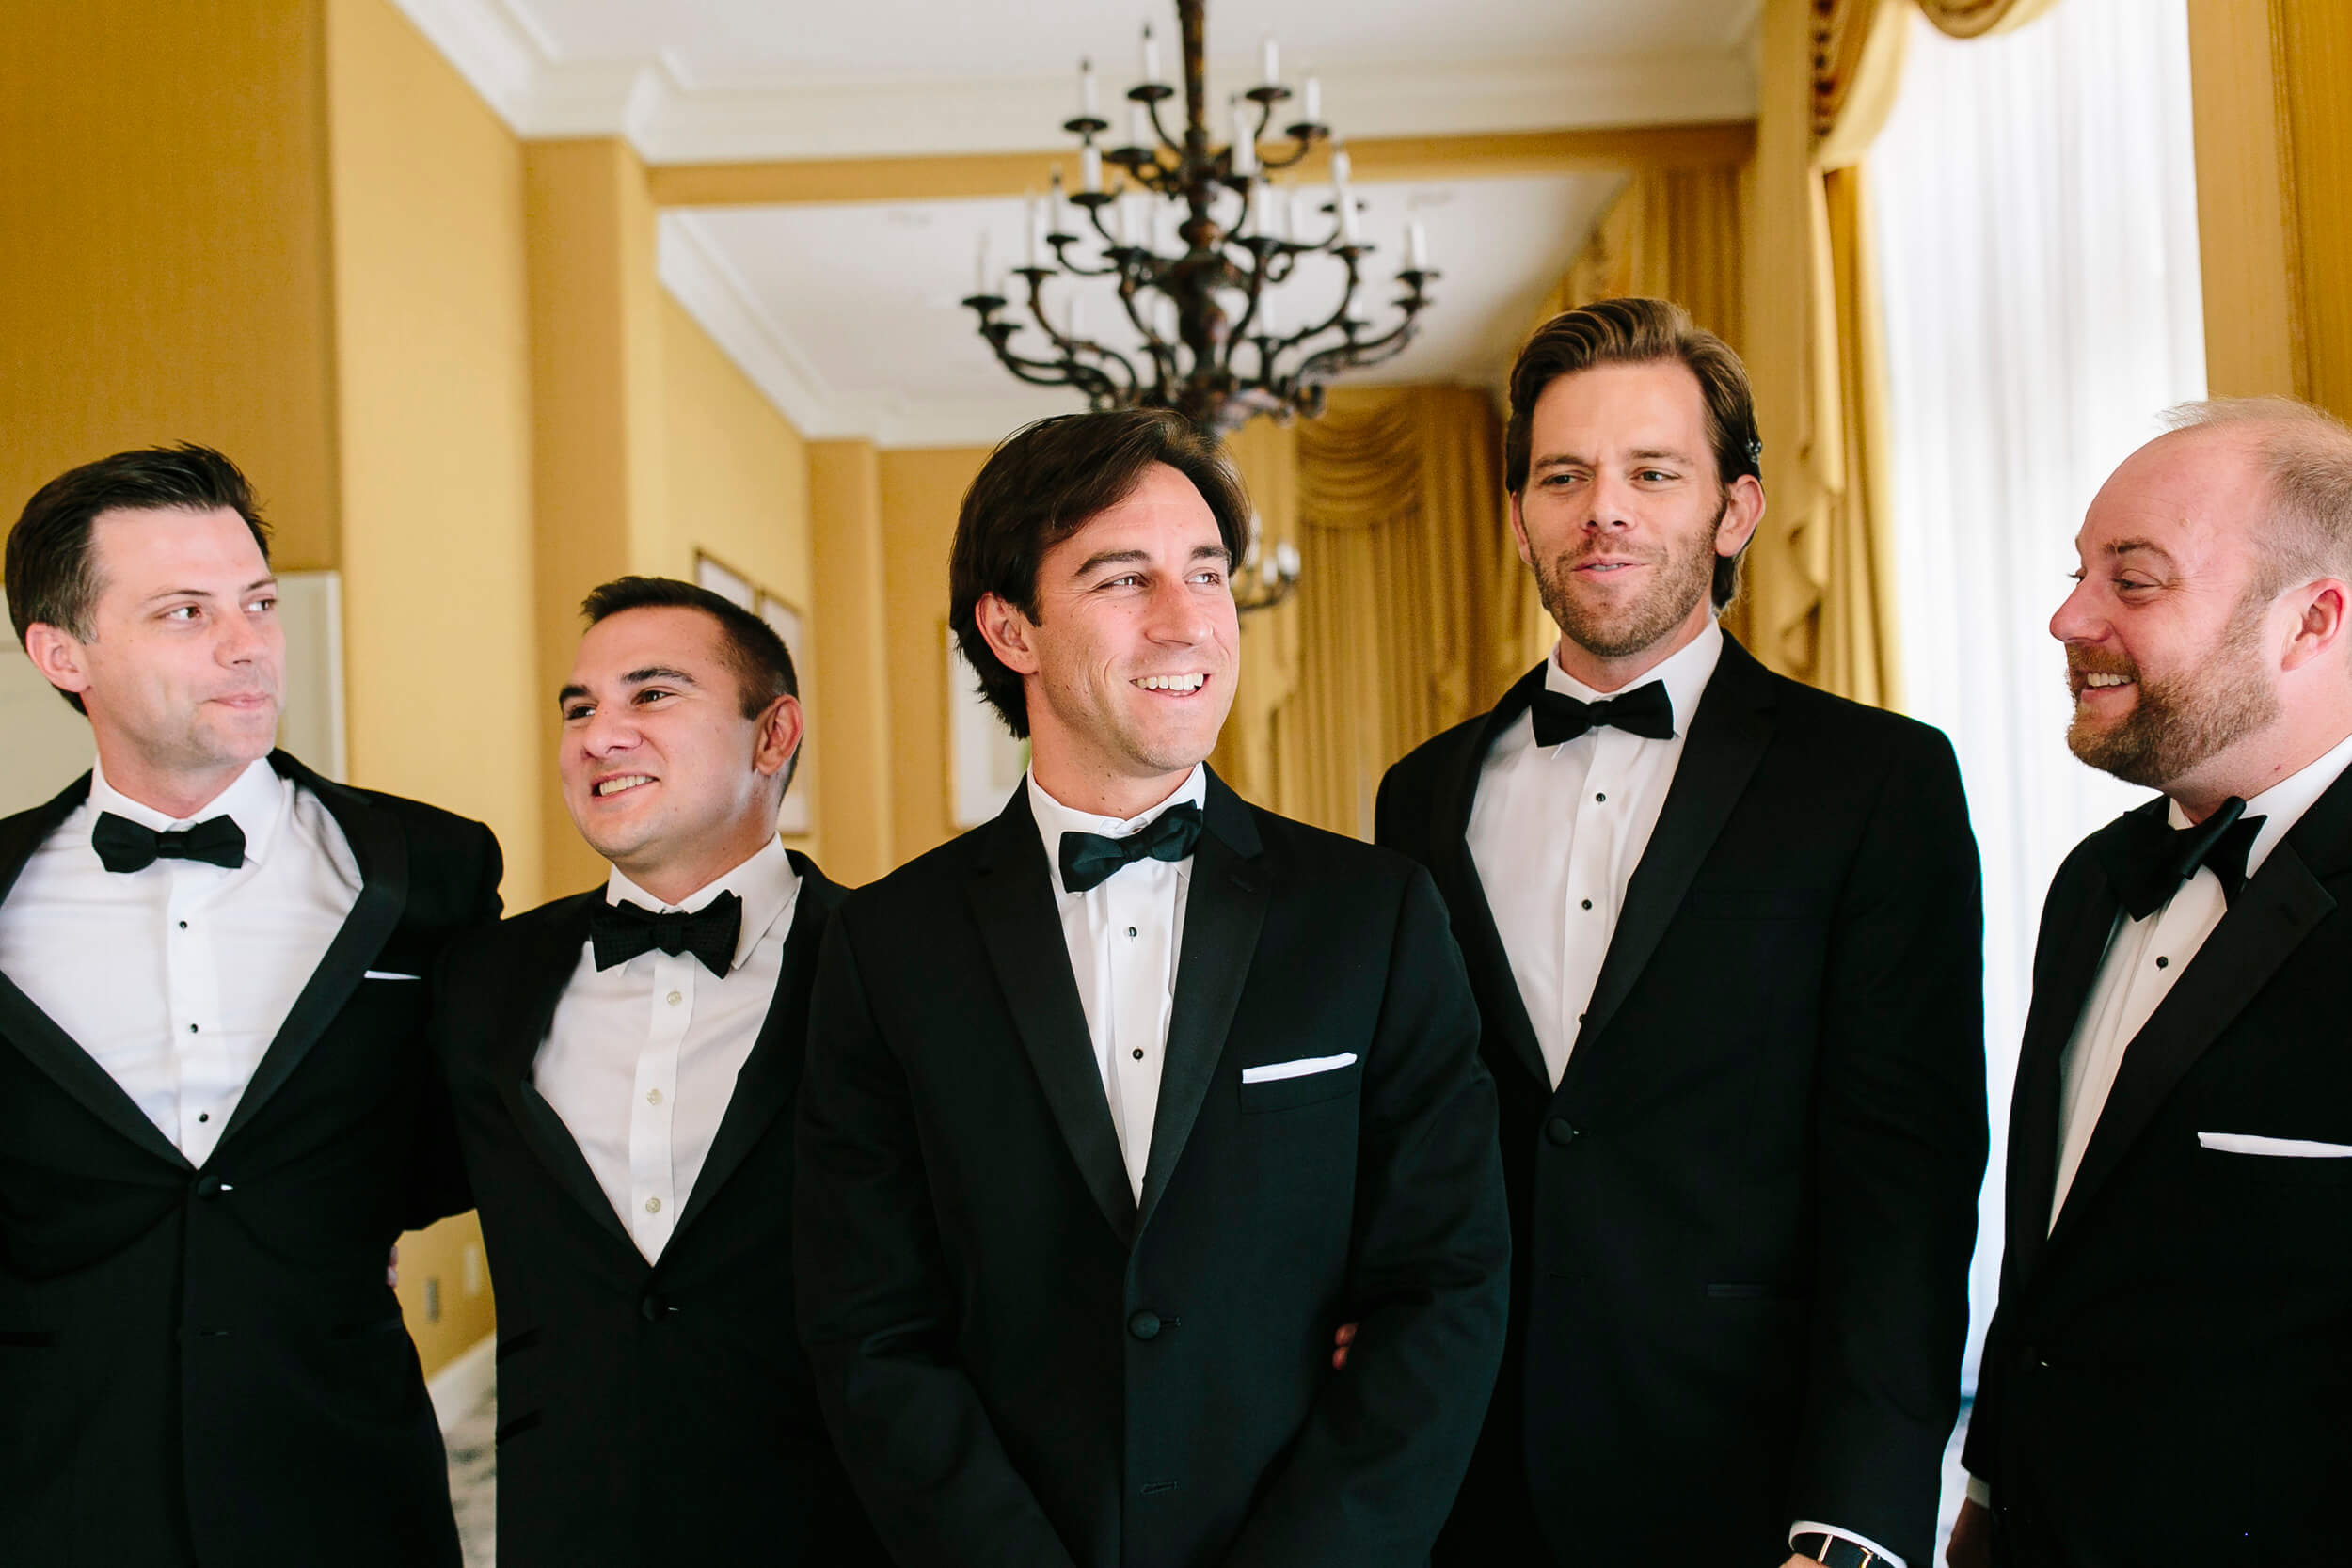 groom and groomsmen tuxedos